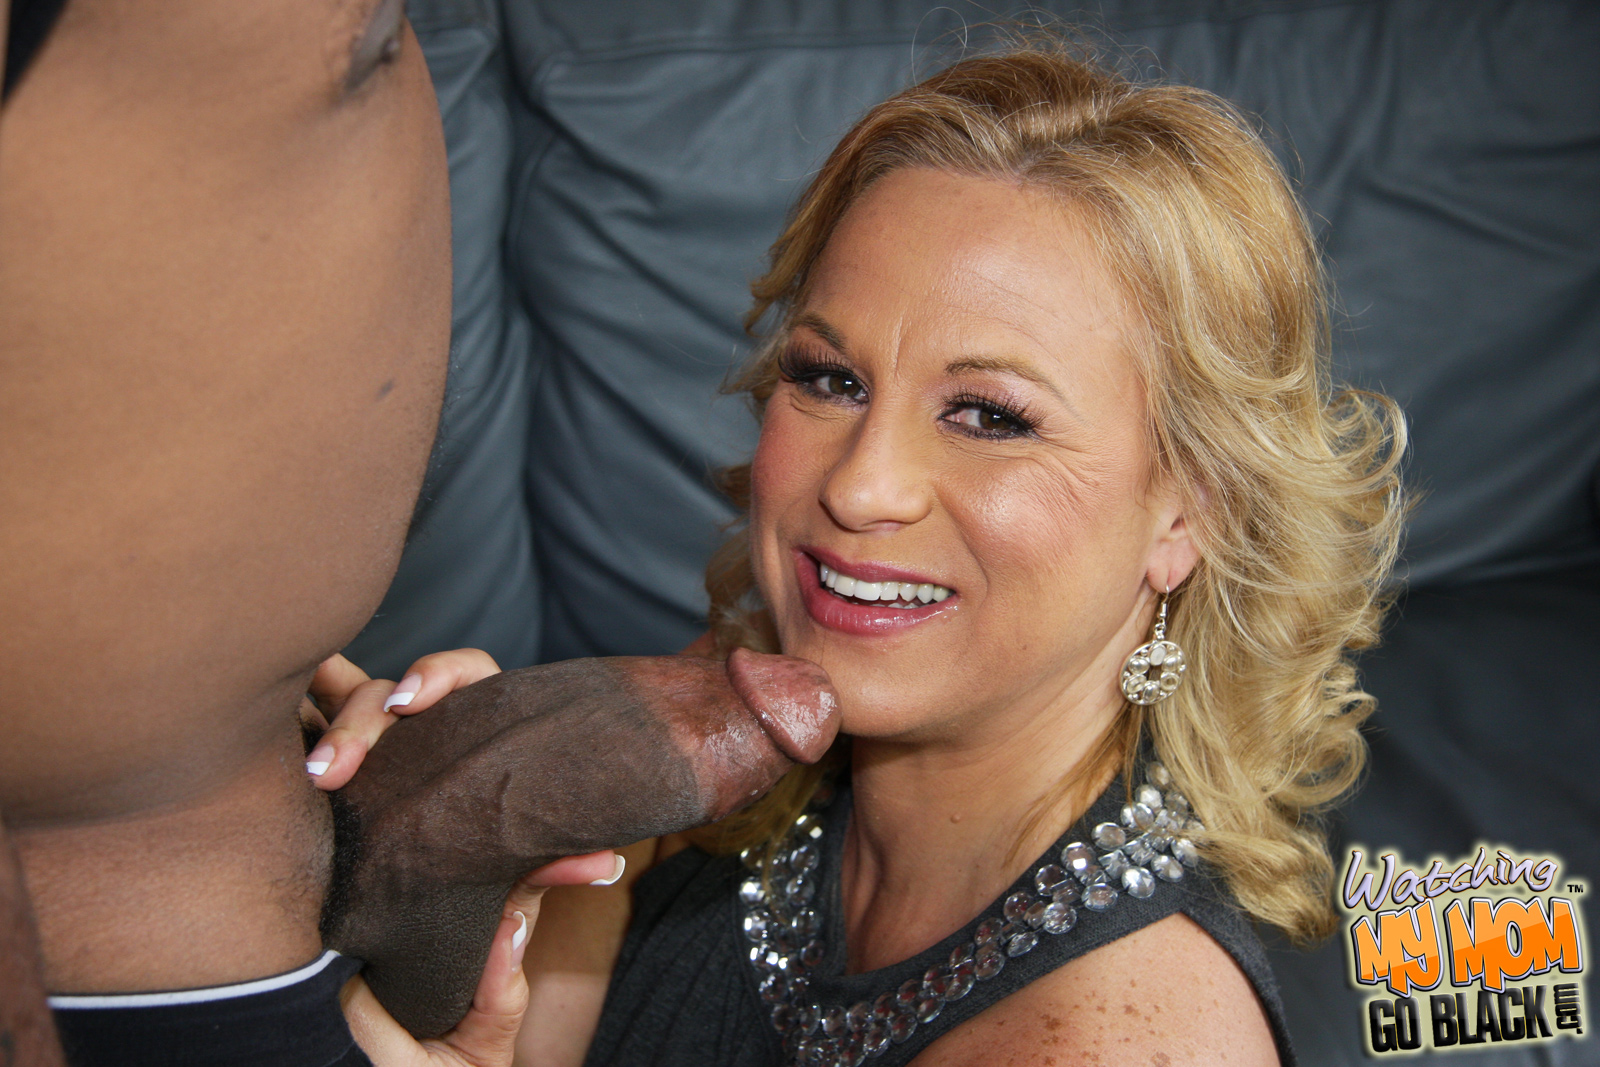 stunning summer interracial